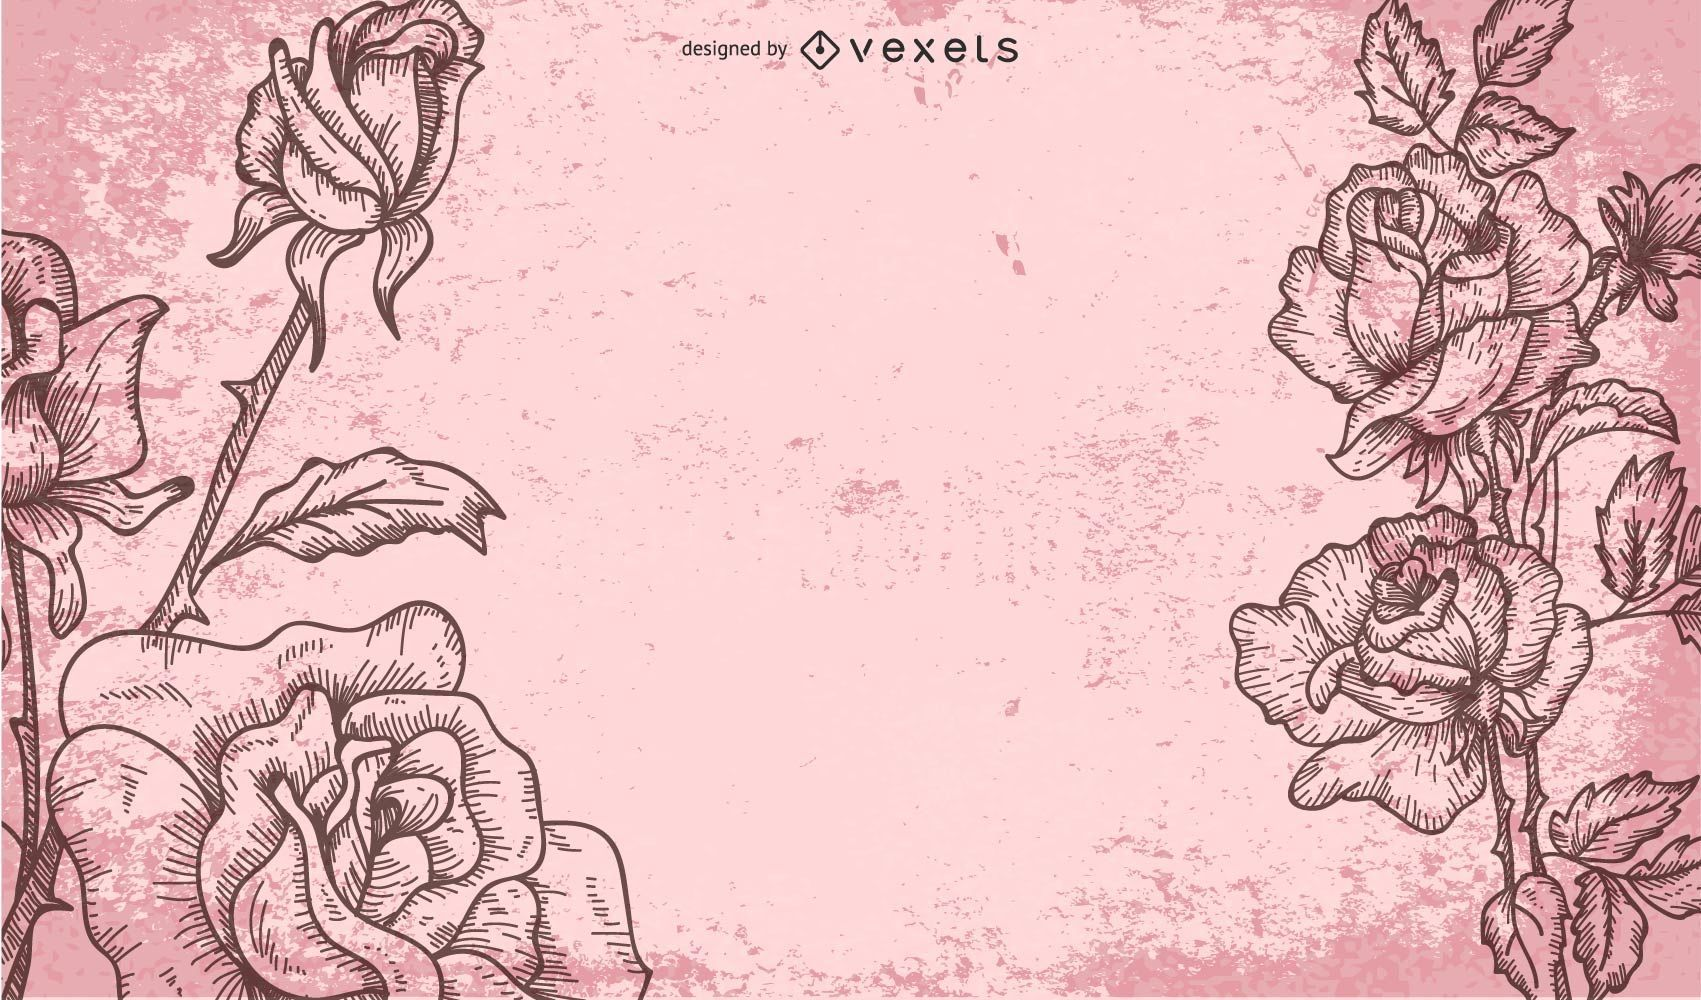 Retro Grungy Background with Roses